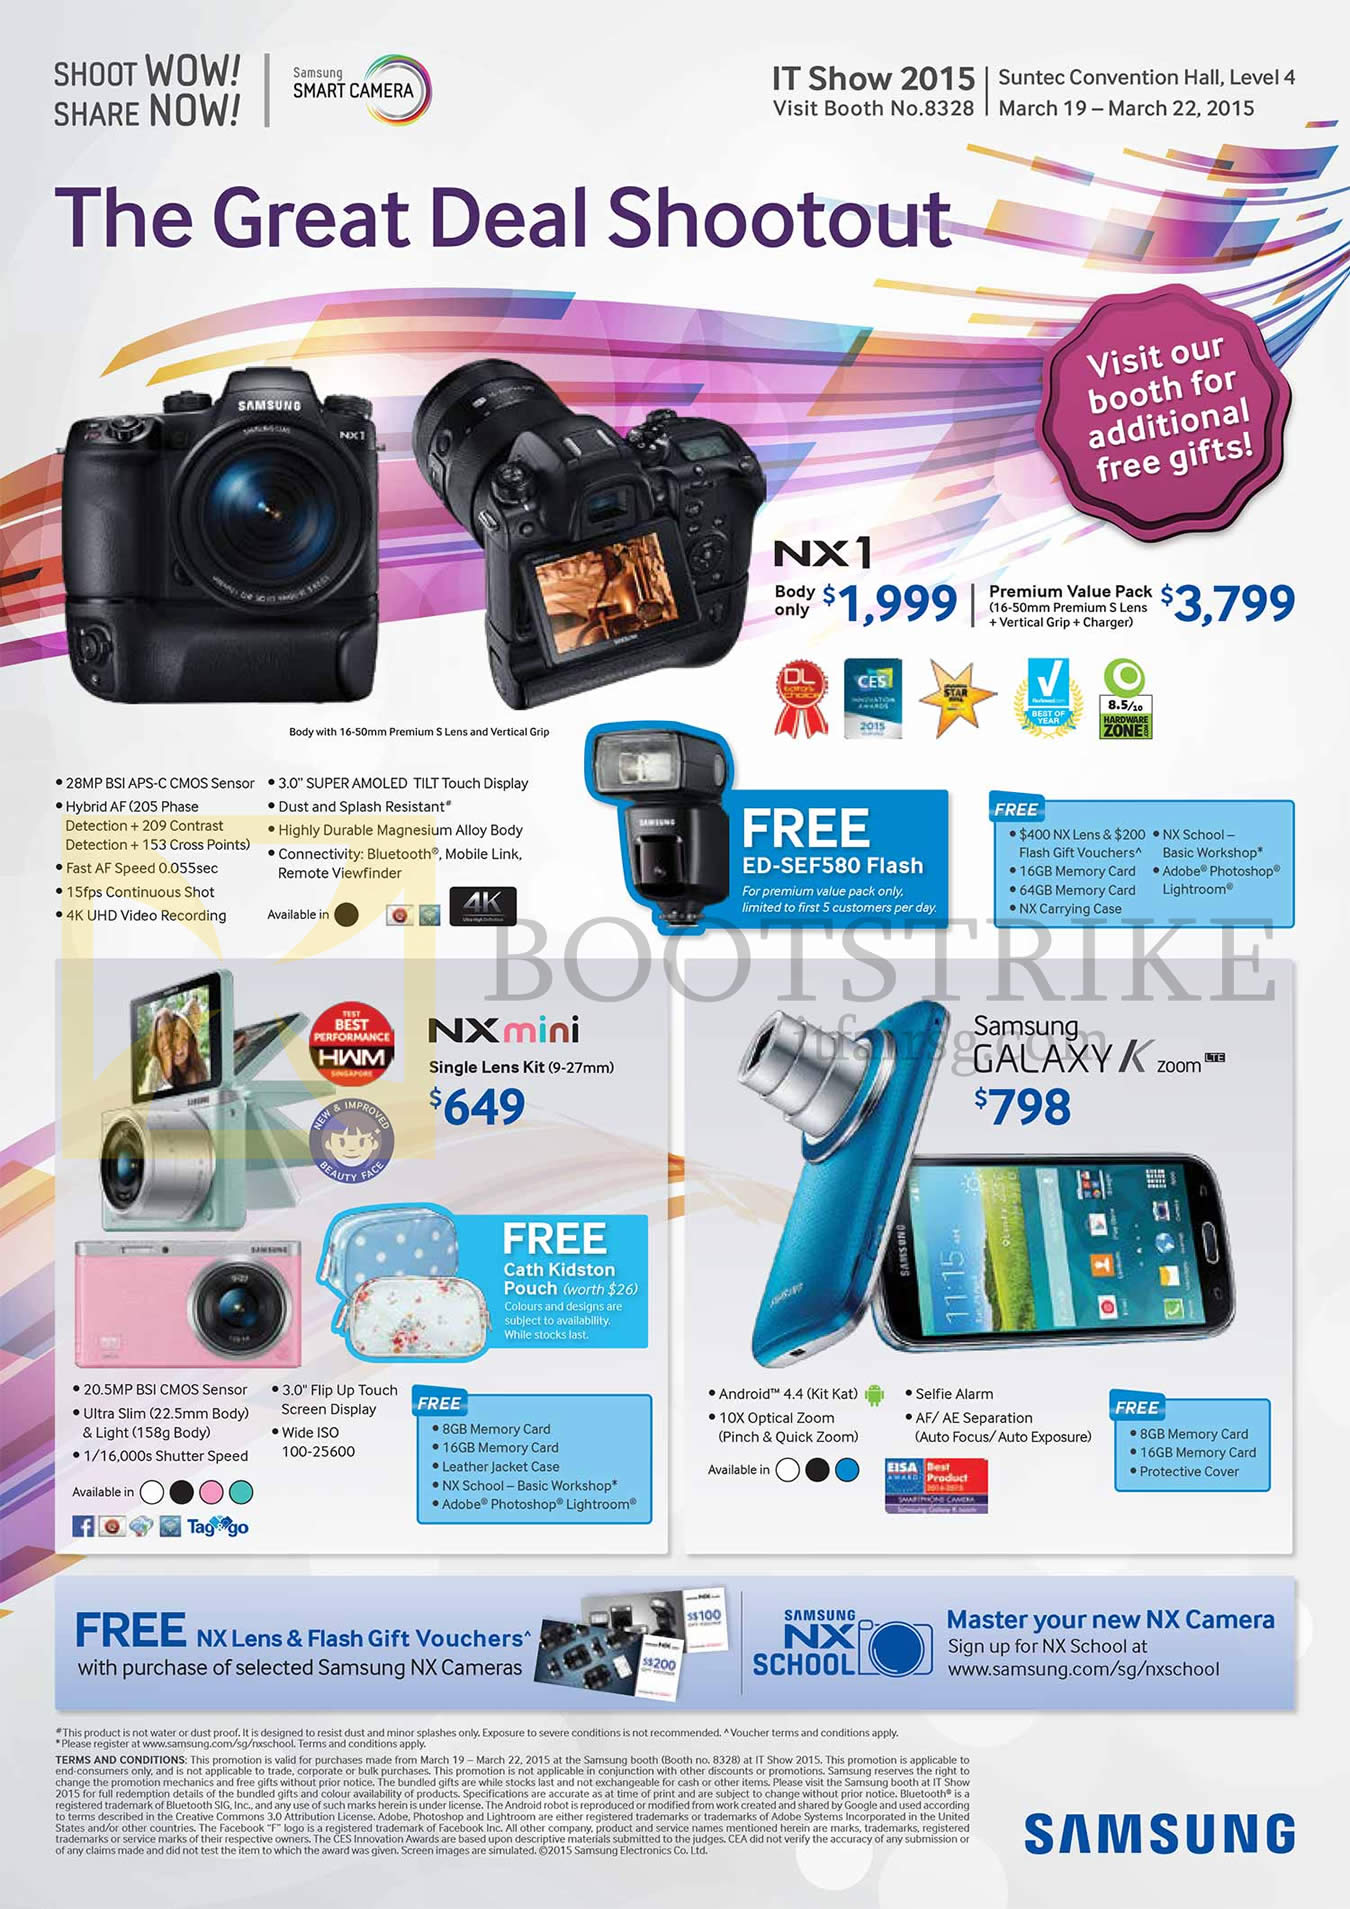 Samsung Digital Cameras NX1, NX Mini, Galaxy K Zoom